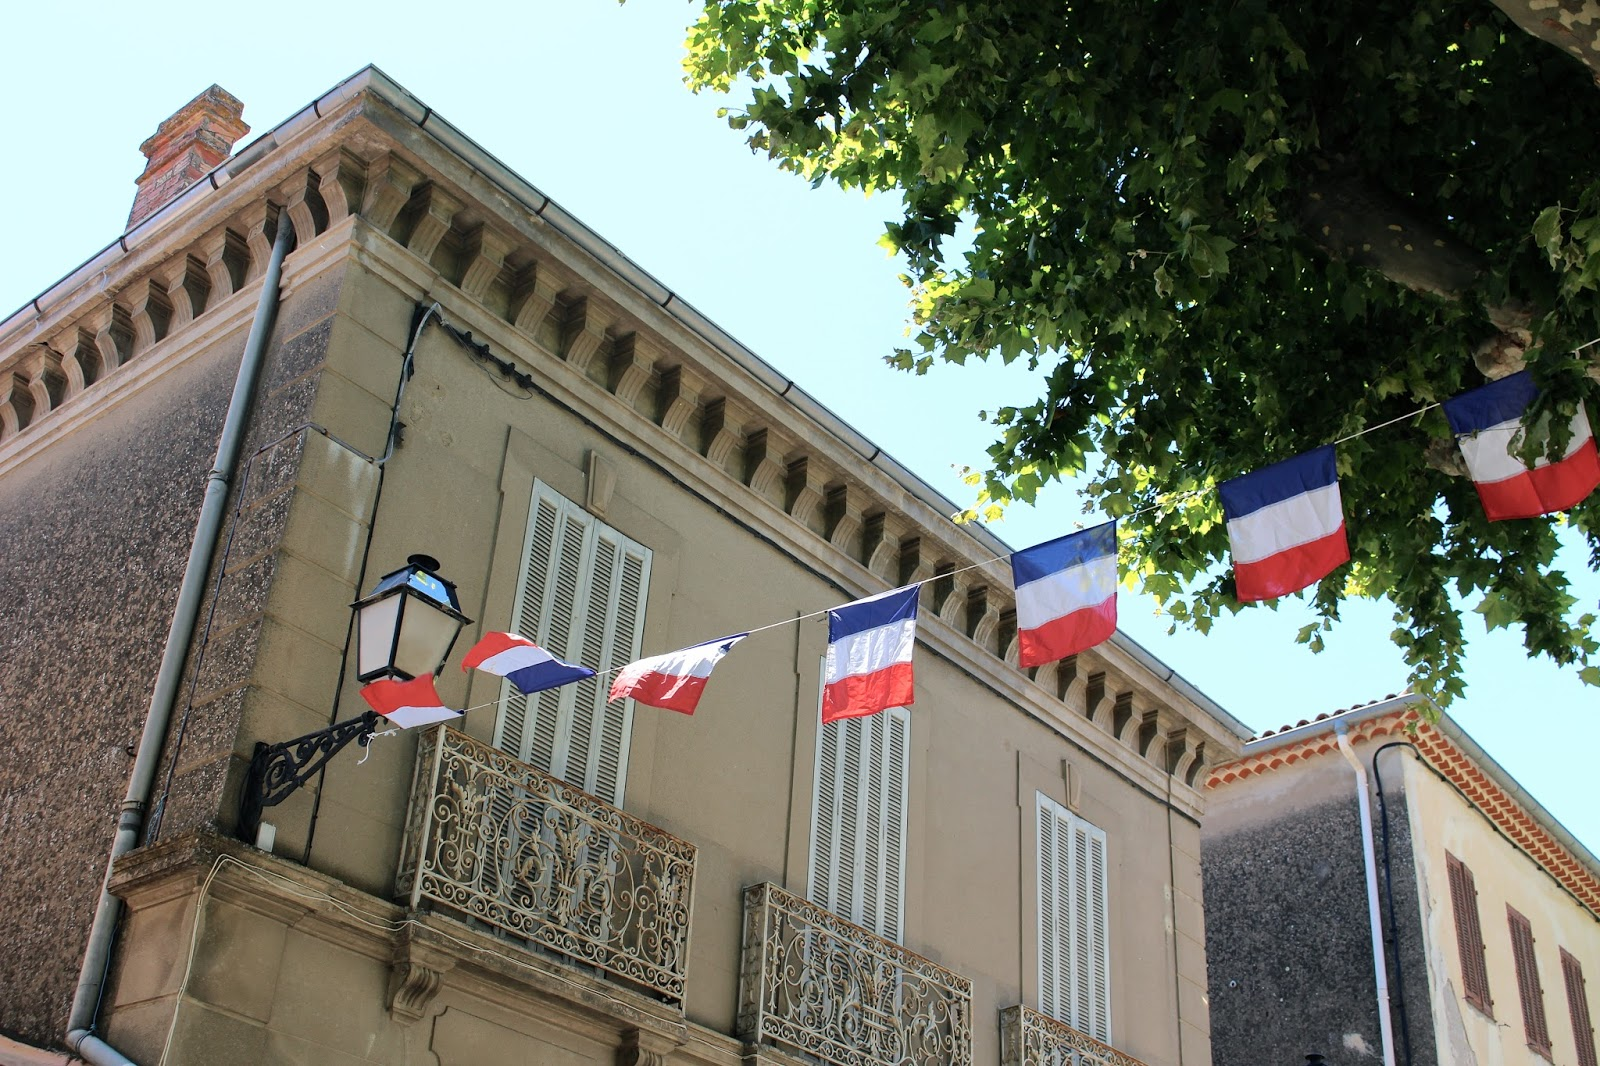 Collobrieres tourism french flags